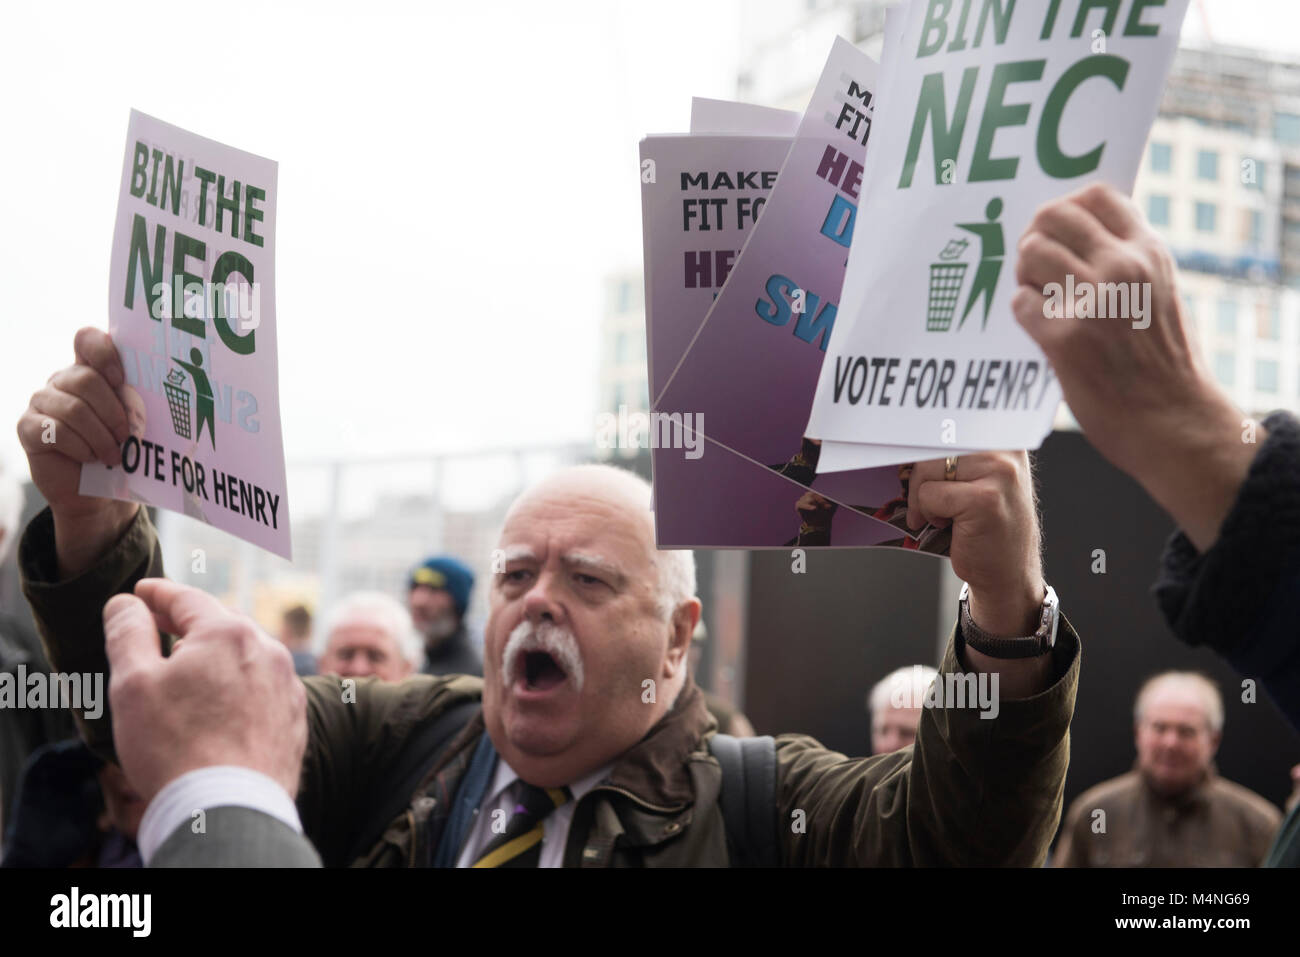 Birmingham ICC, UK. 17th Feb, 2018. UKIP EGM (extraordinary general meeting) A vote of confidence by party members - Stock Image